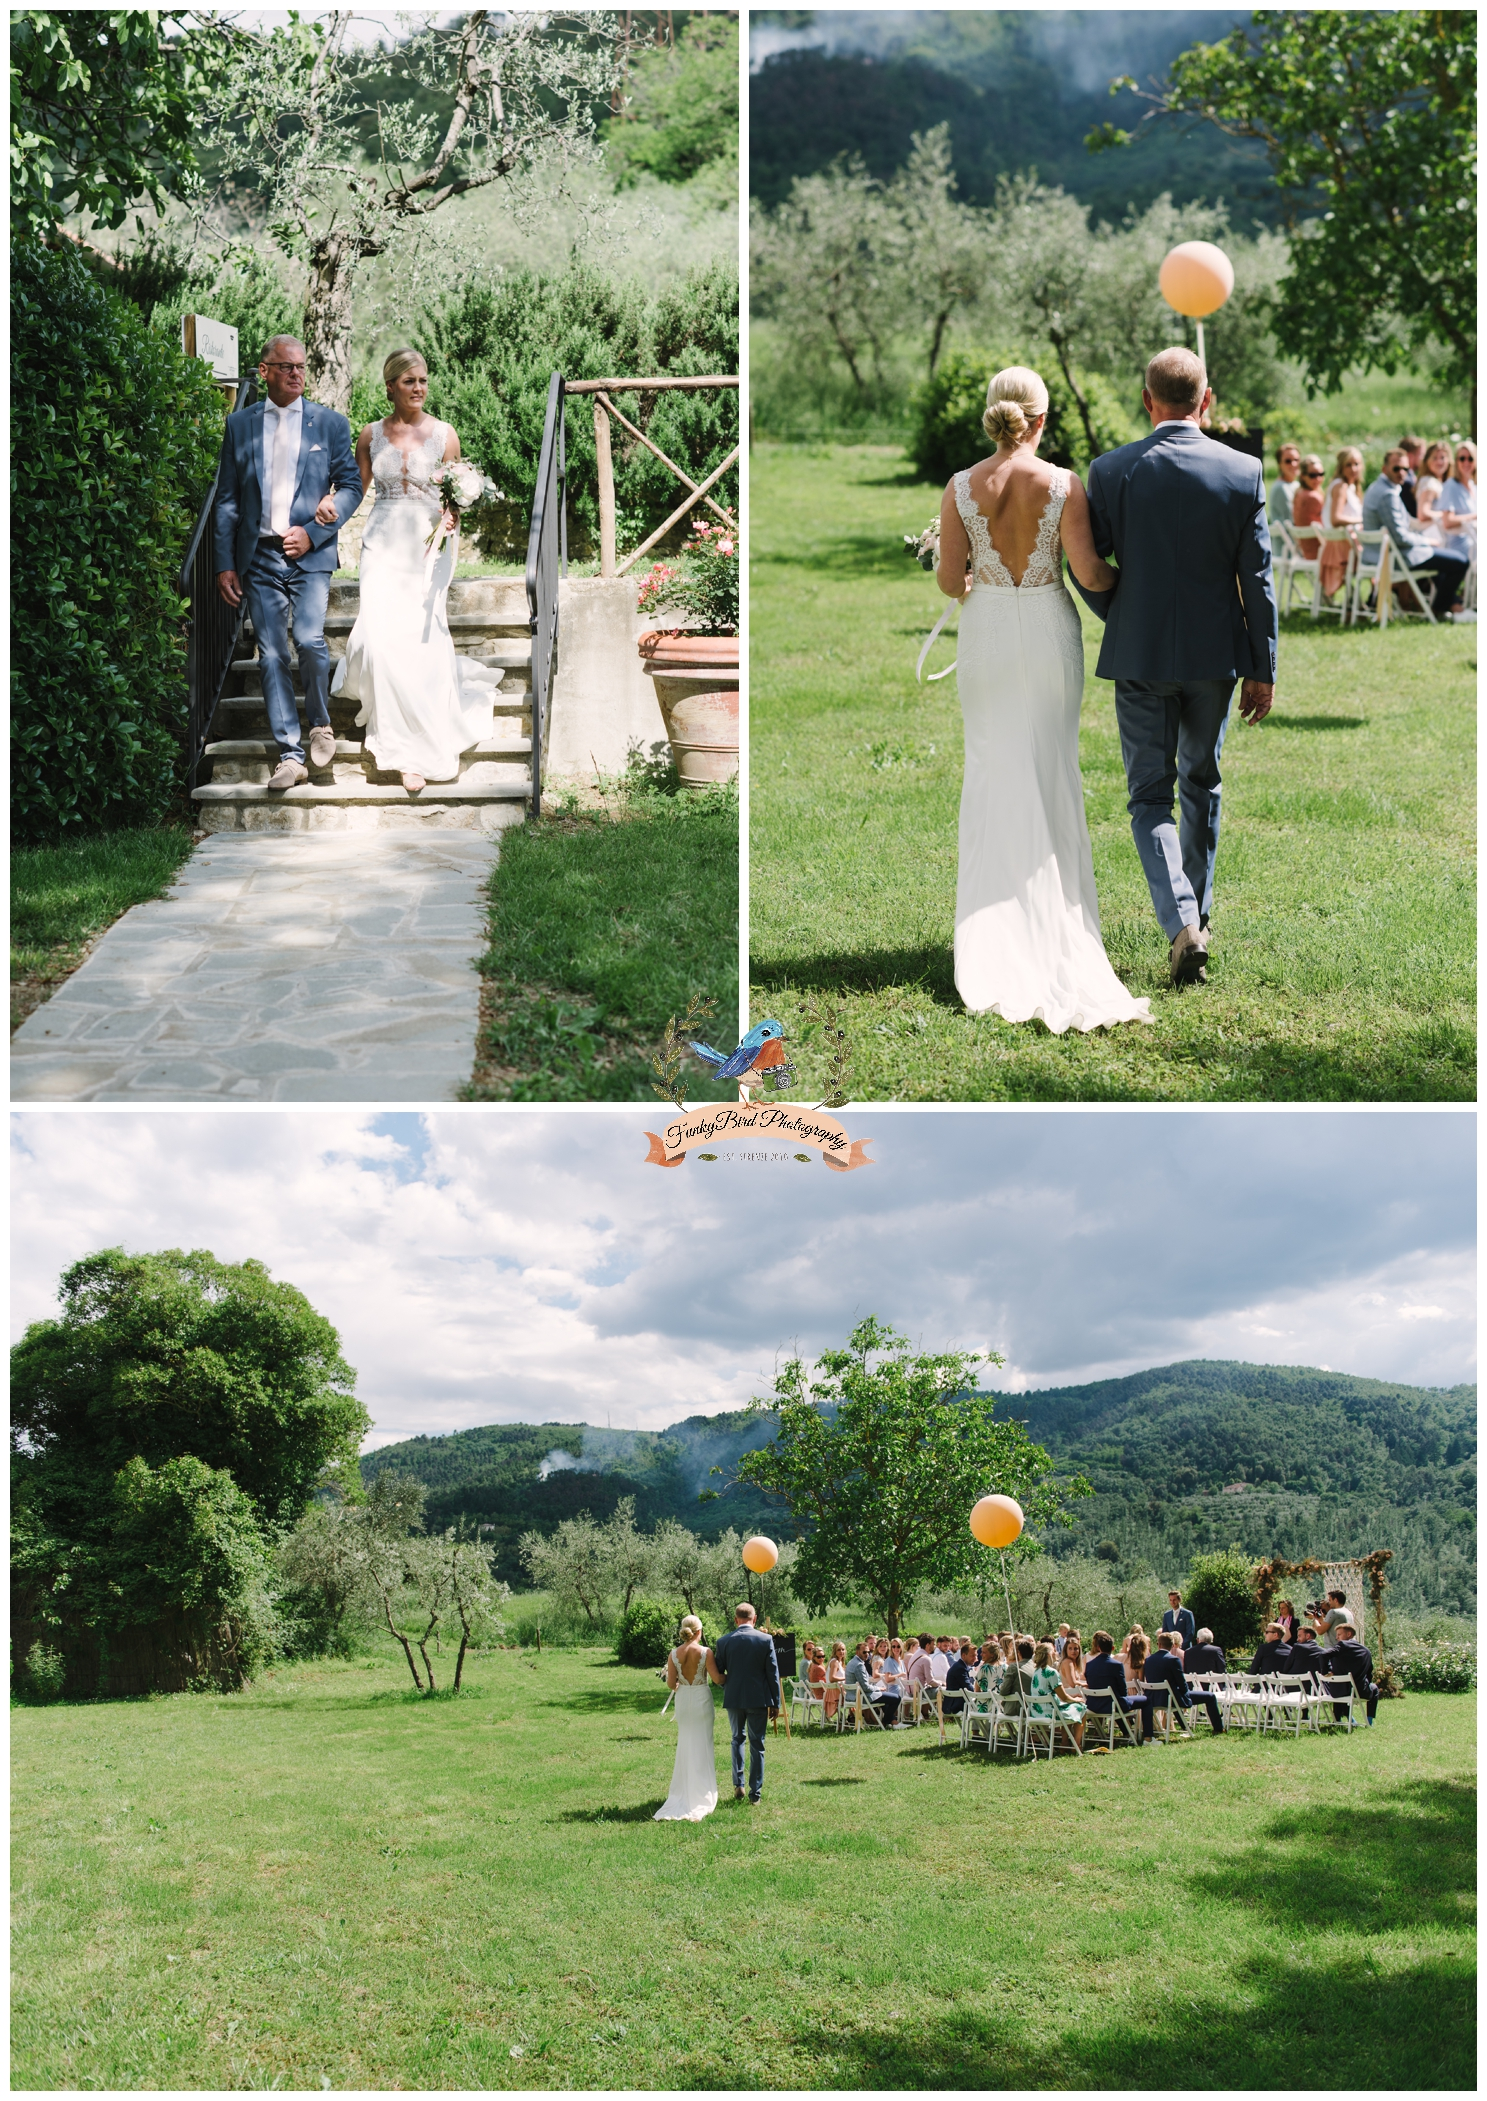 Wedding_Photographer_Tuscany_Italy_0033.jpg